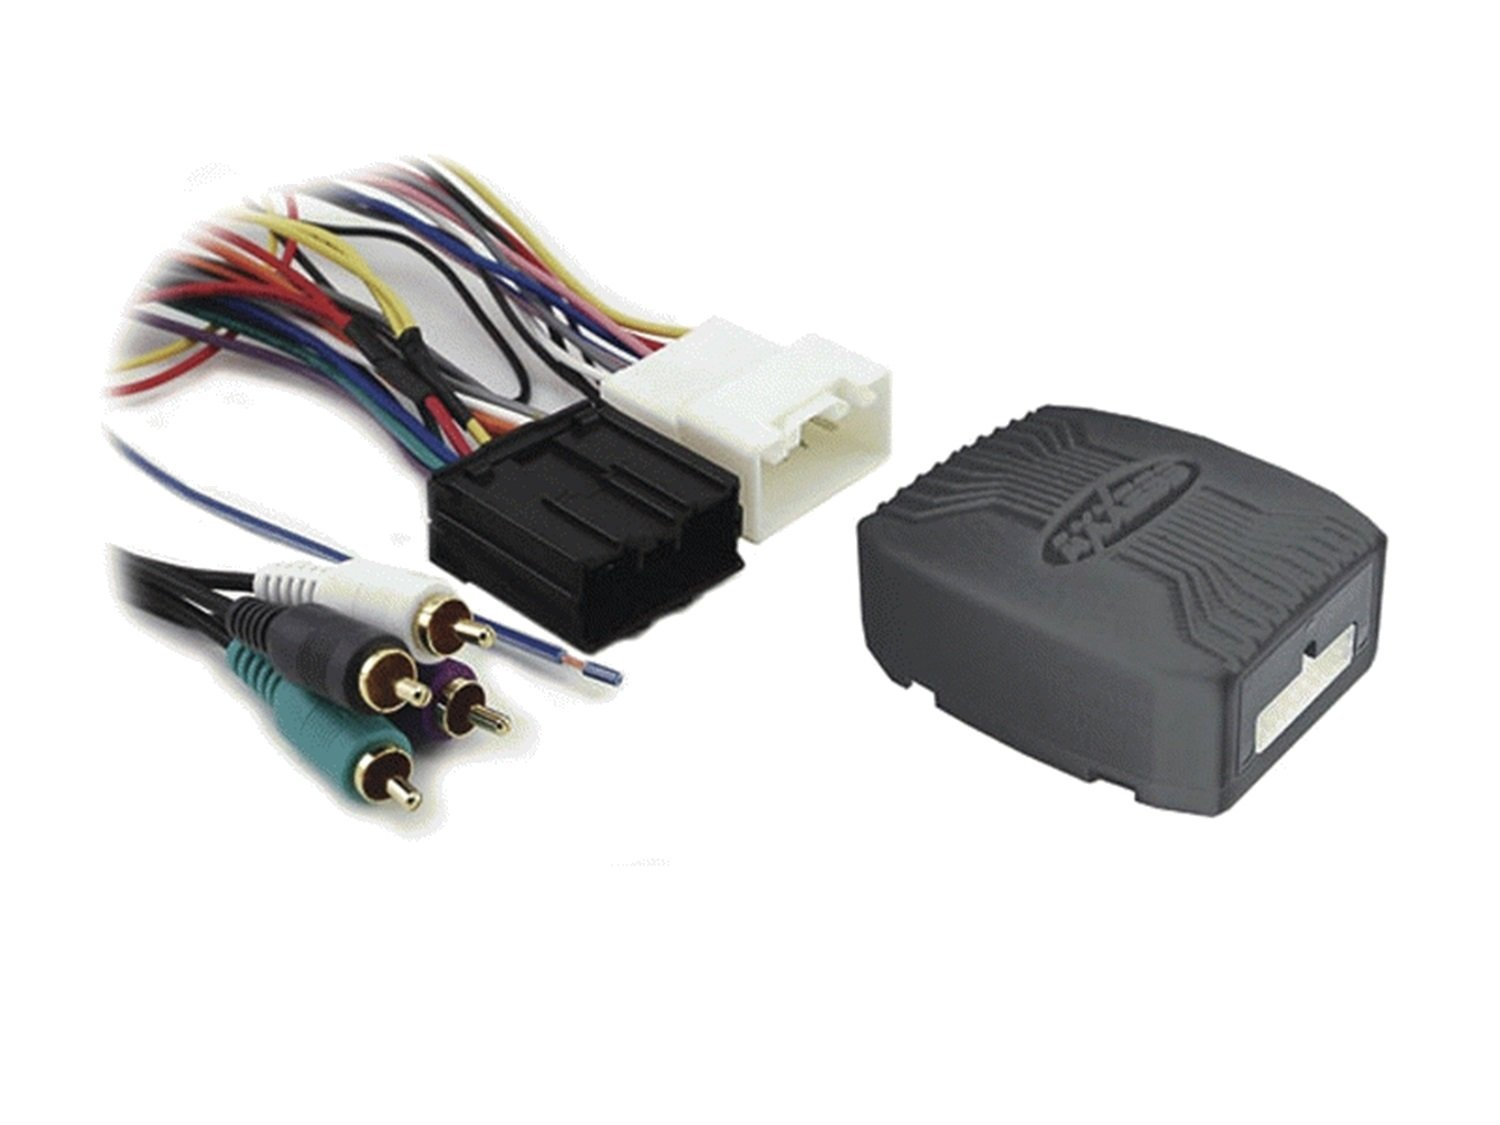 61j9vDGkXxL._SL1500_ amazon com axxess mito 01 amplifier interface harness for select pioneer to mitsubishi wiring harness at soozxer.org